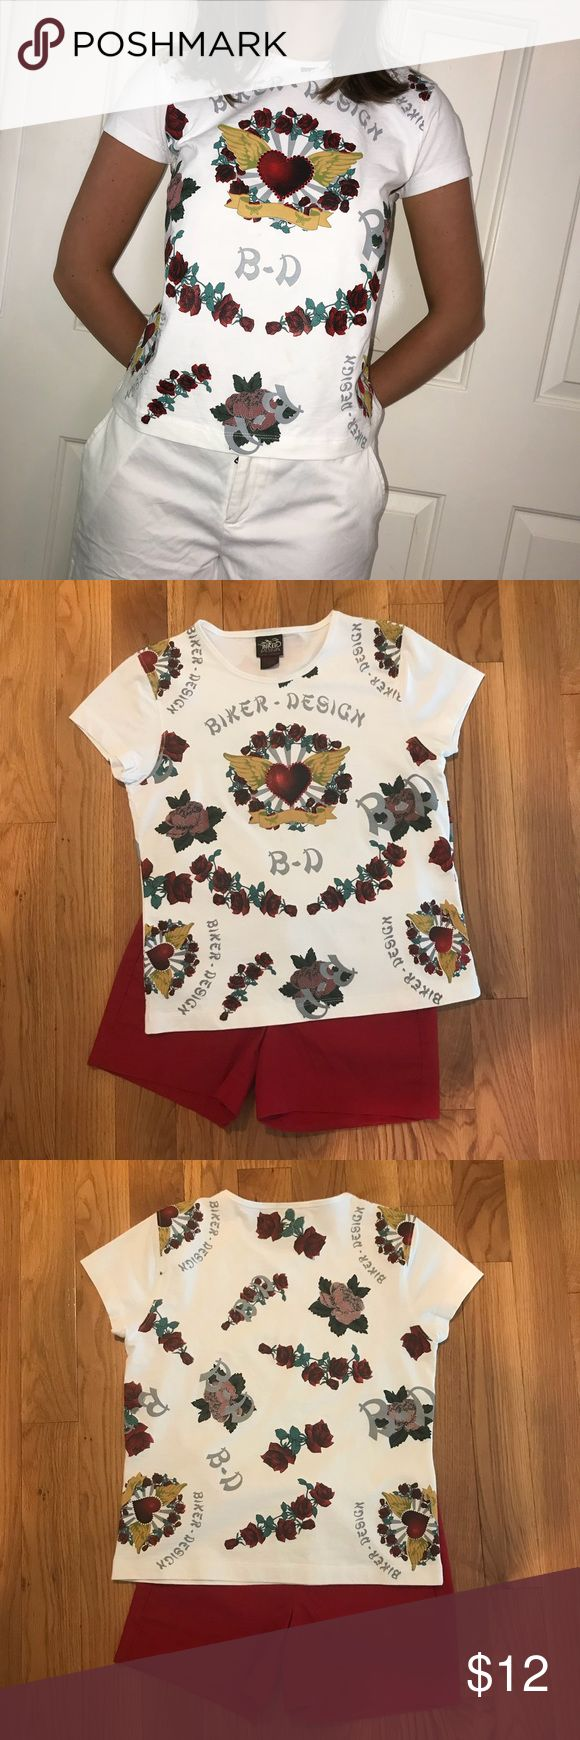 122 Best My Posh Closet Images On Pinterest Grips Men Baseline Tee Shirt Red Adorable Biker Design Rose And Heart Print T